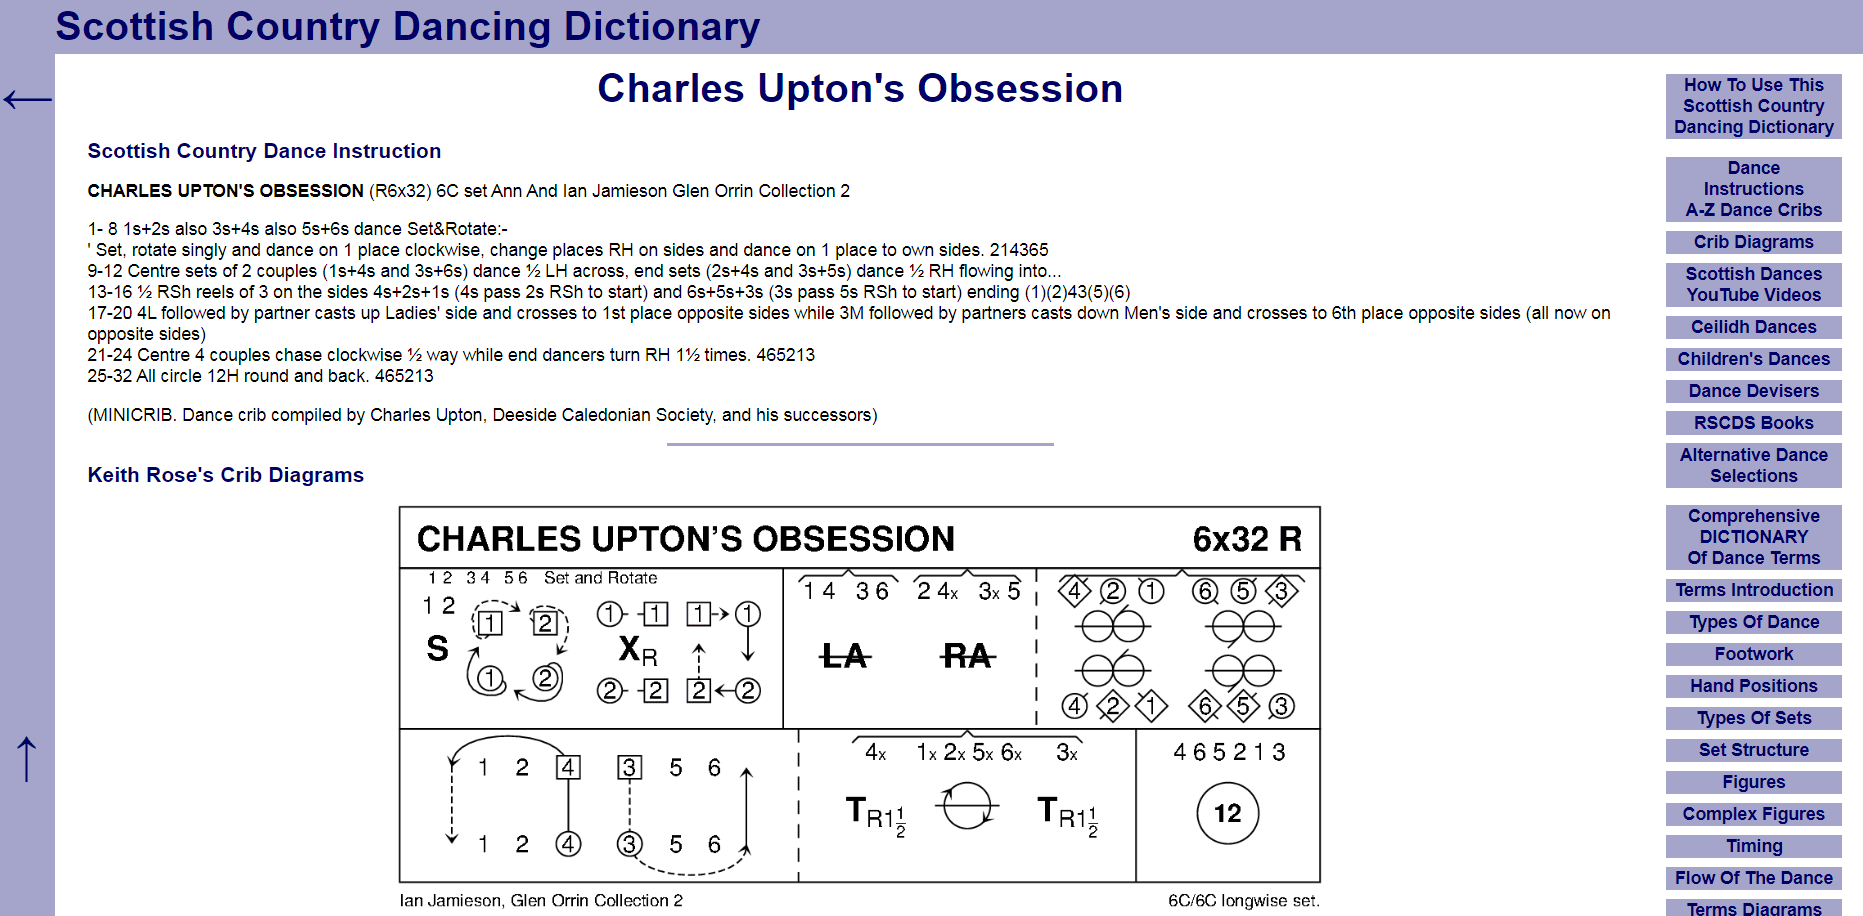 Screenshot of Scottish Country Dancing Dictionary Charles Uptons Obsession page.